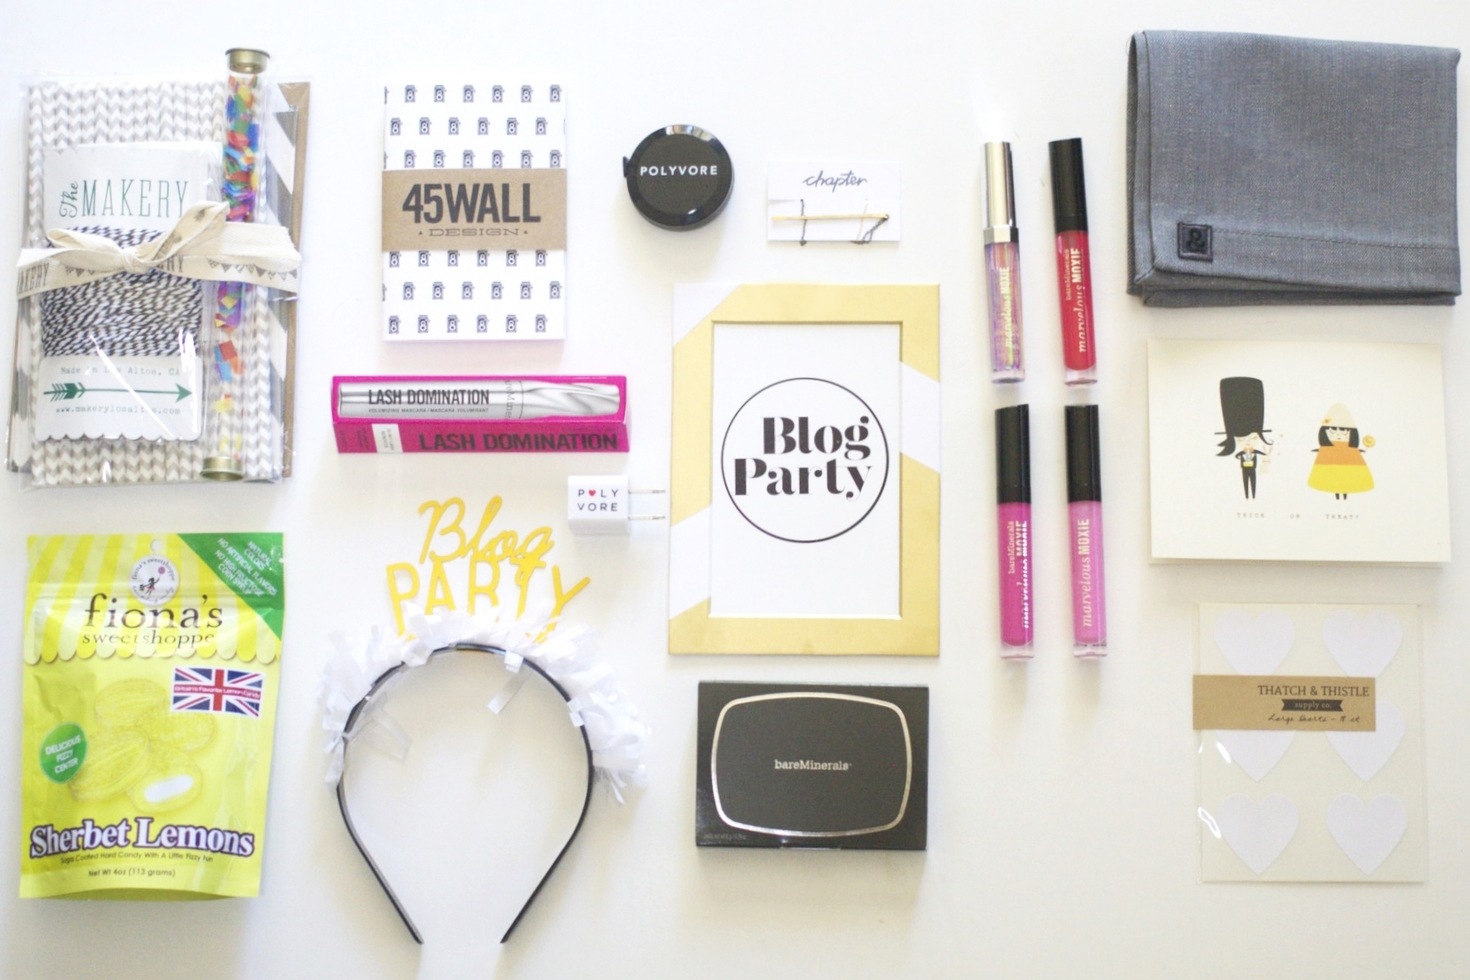 We think this was a pretty good Party Box, what do you think?